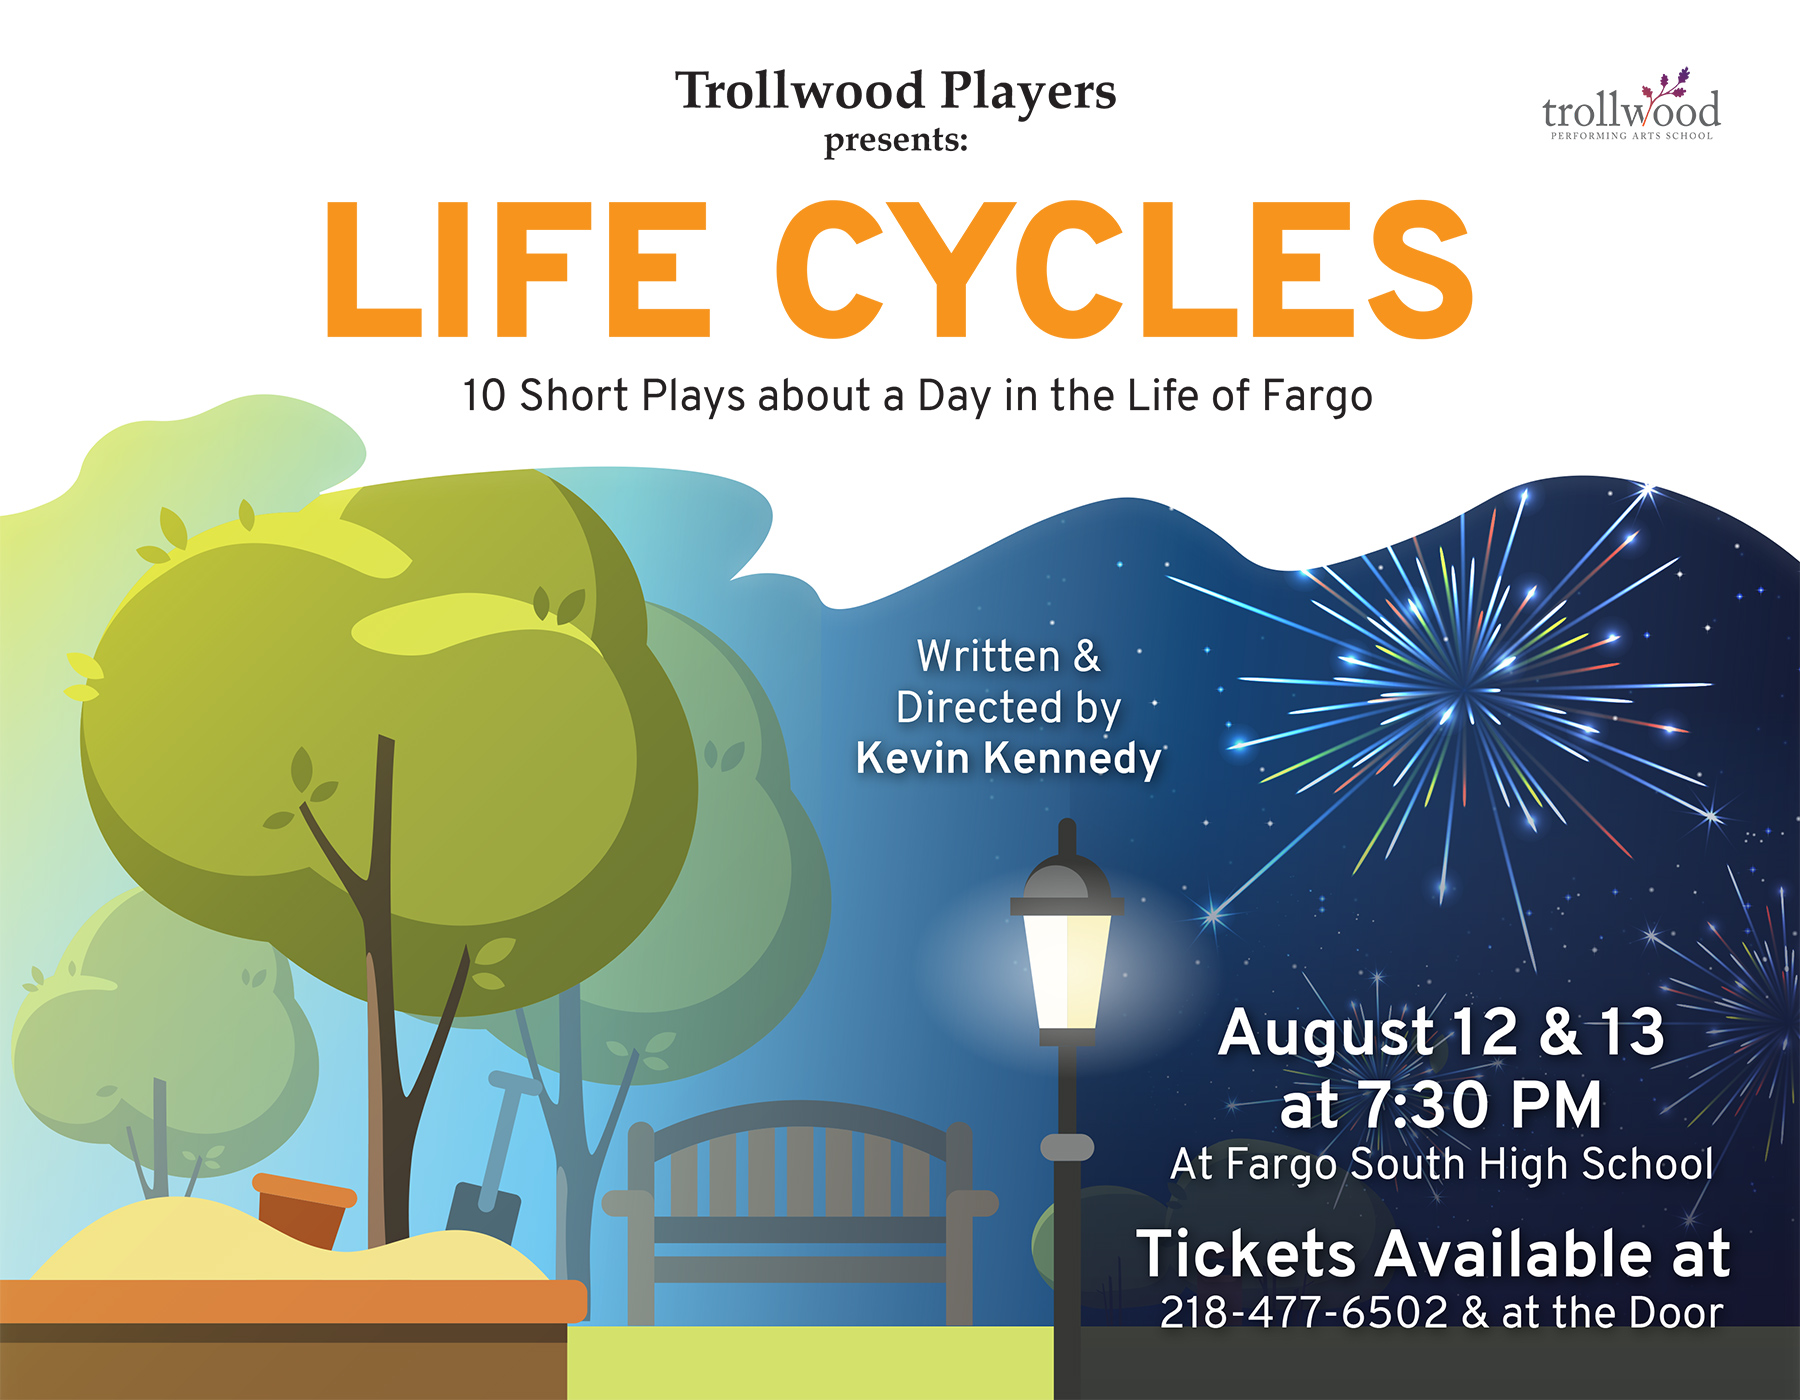 Trollwood Players Life Cycles Poster